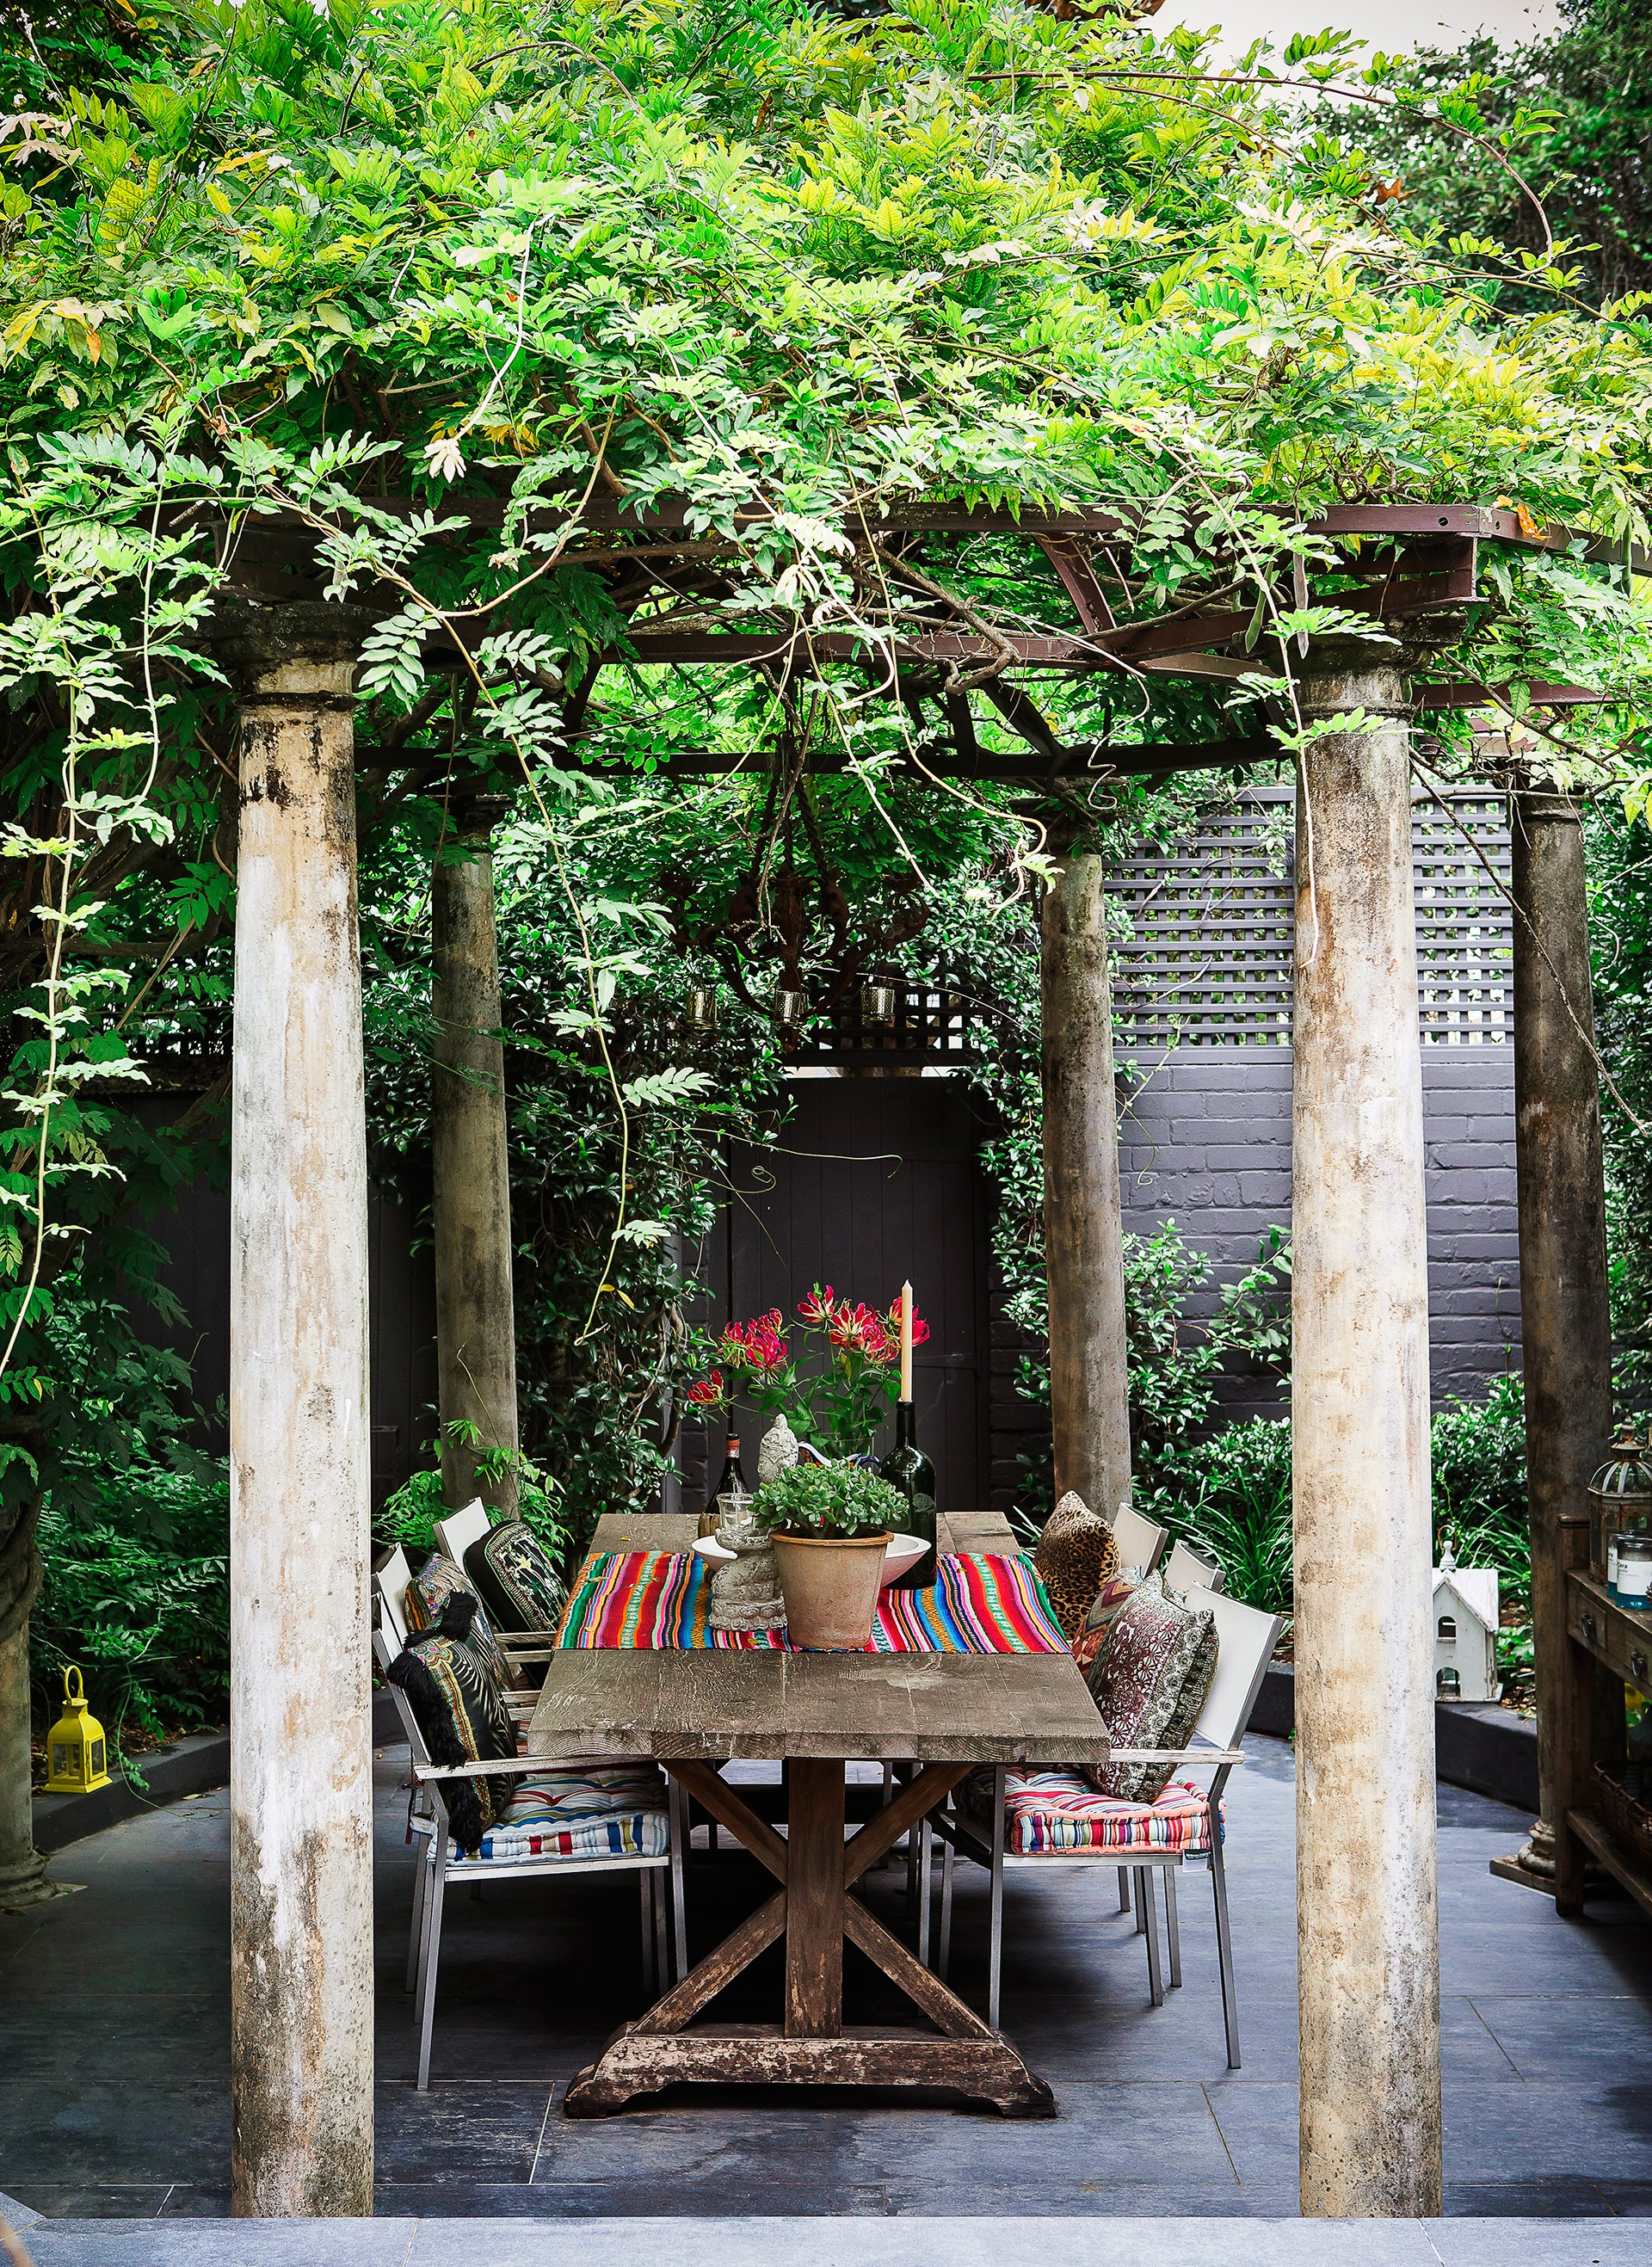 """A wisteria-draped pergola over an antique table sets the scene for alfresco dining at the home of designer [Camilla Franks](https://www.camilla.com.au/?utm_campaign=supplier/